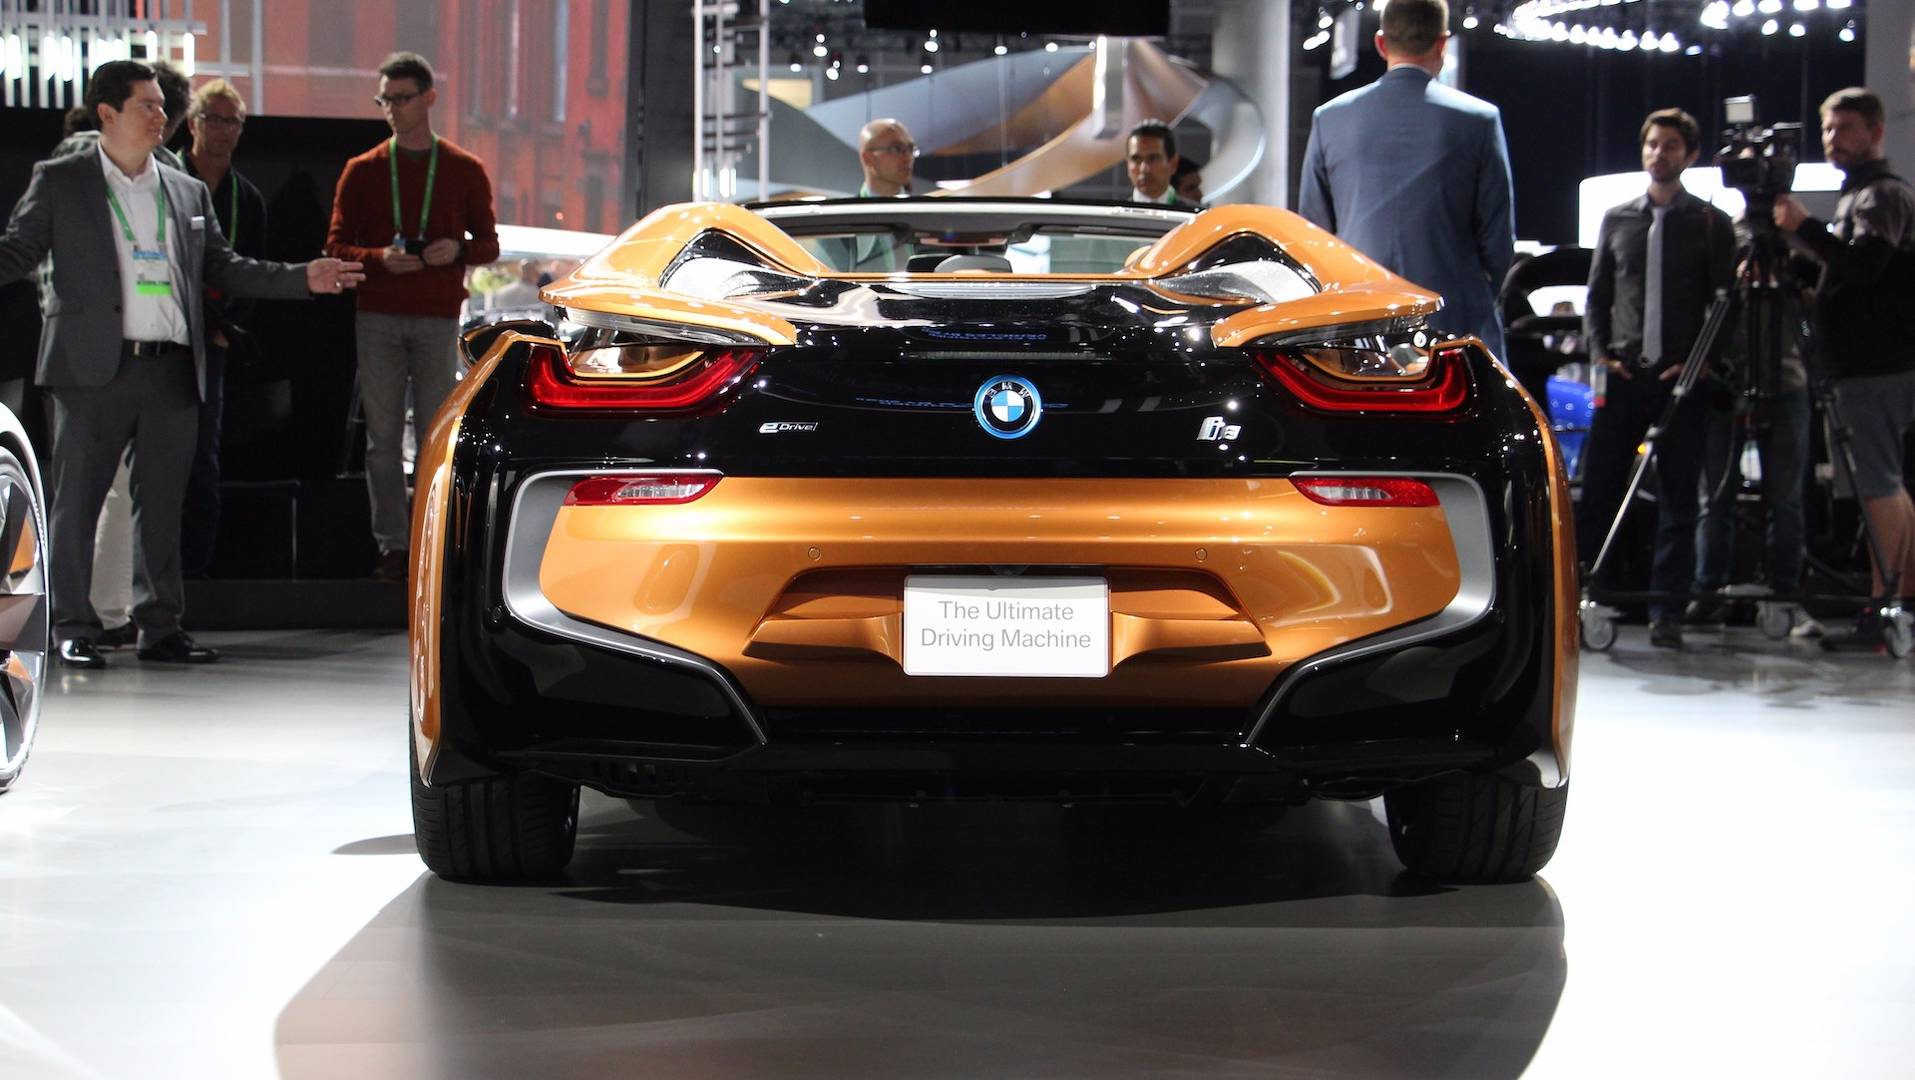 Bmw Promo Makes I8 Roadster Look Ready For The High Tech Future